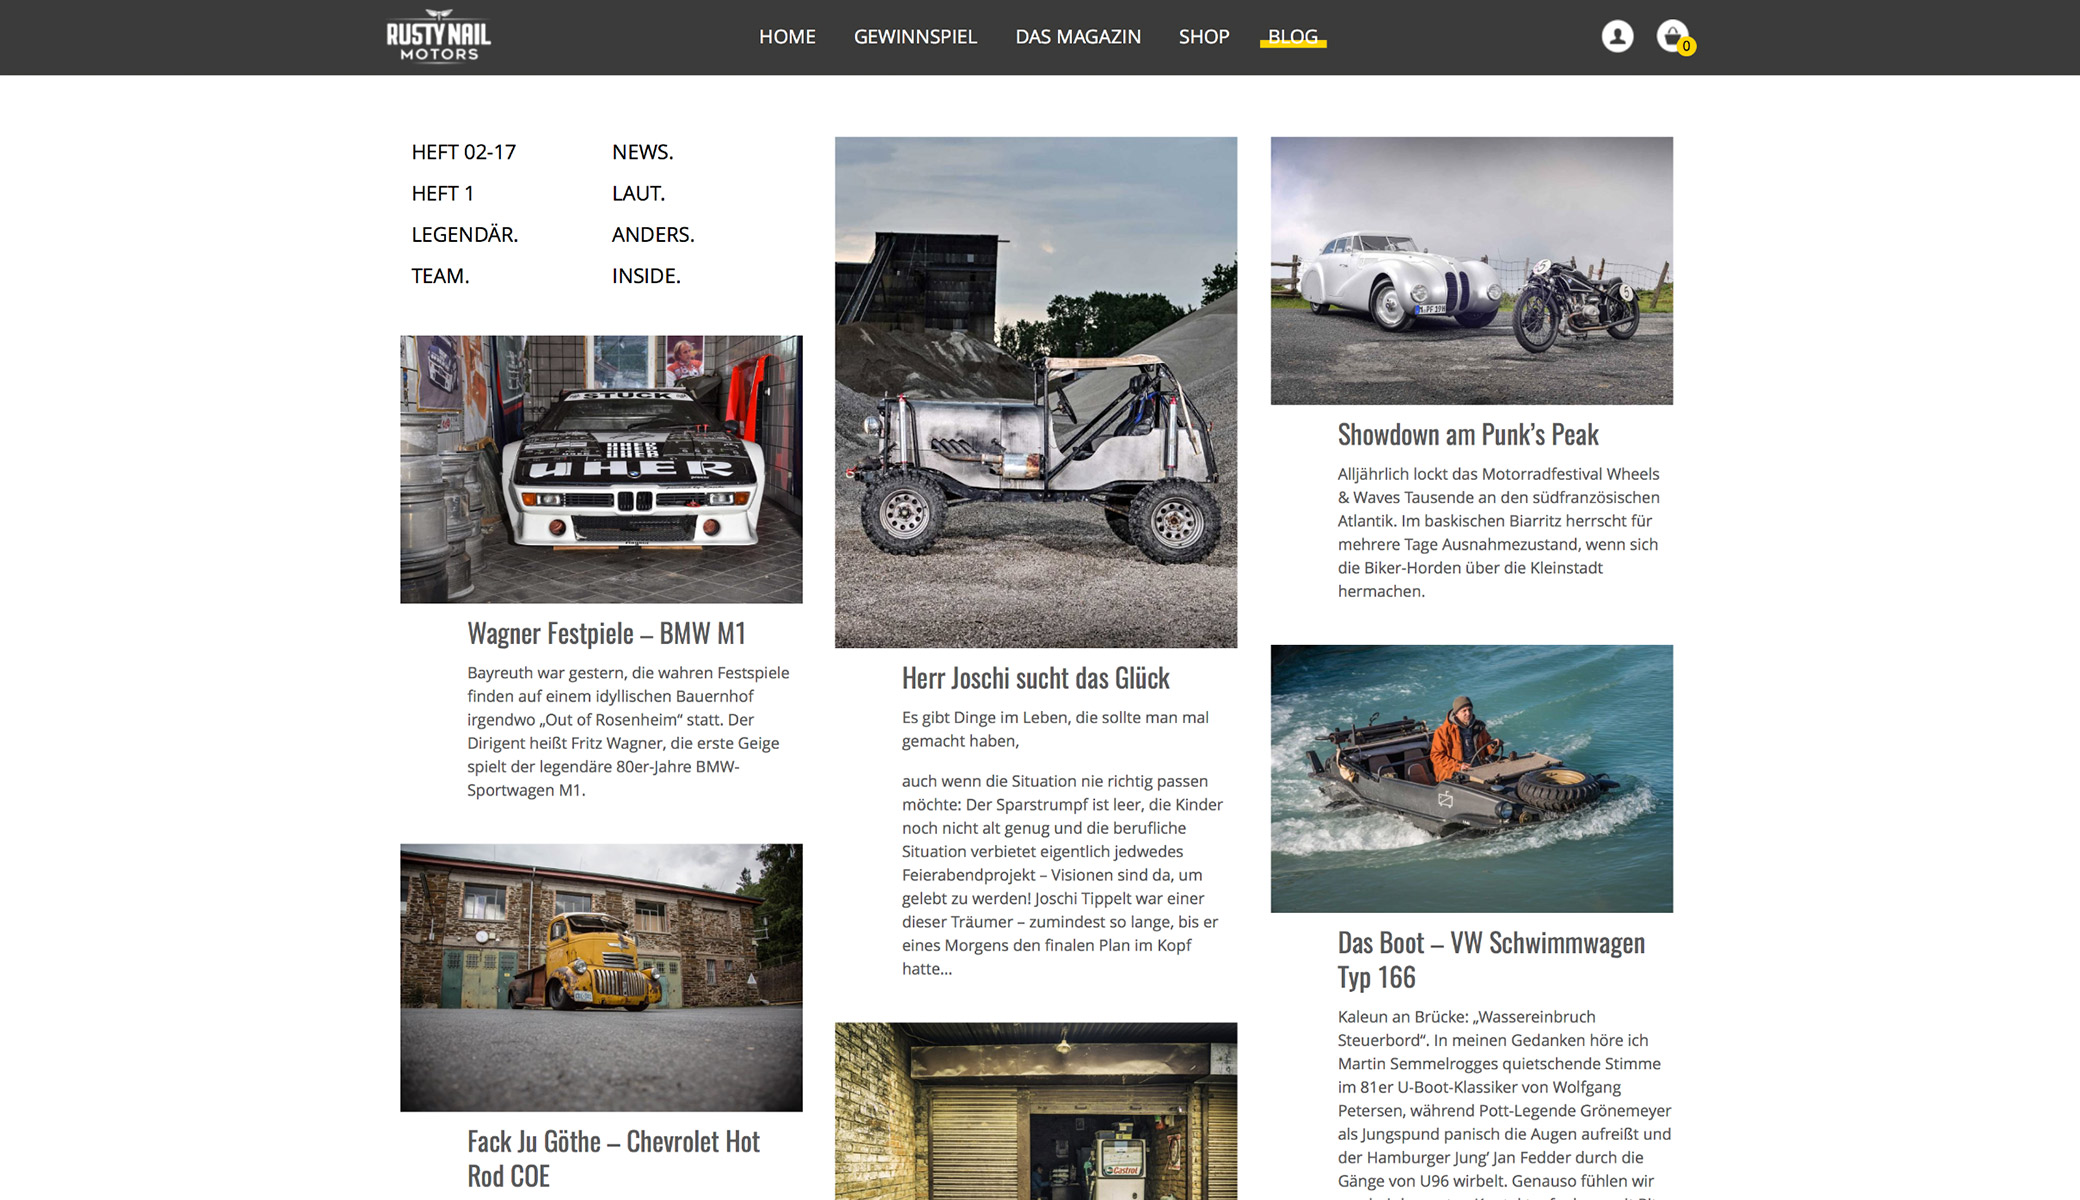 Screenshot Rusty Nail Motors WooCommerce Projekt Blog Desktop